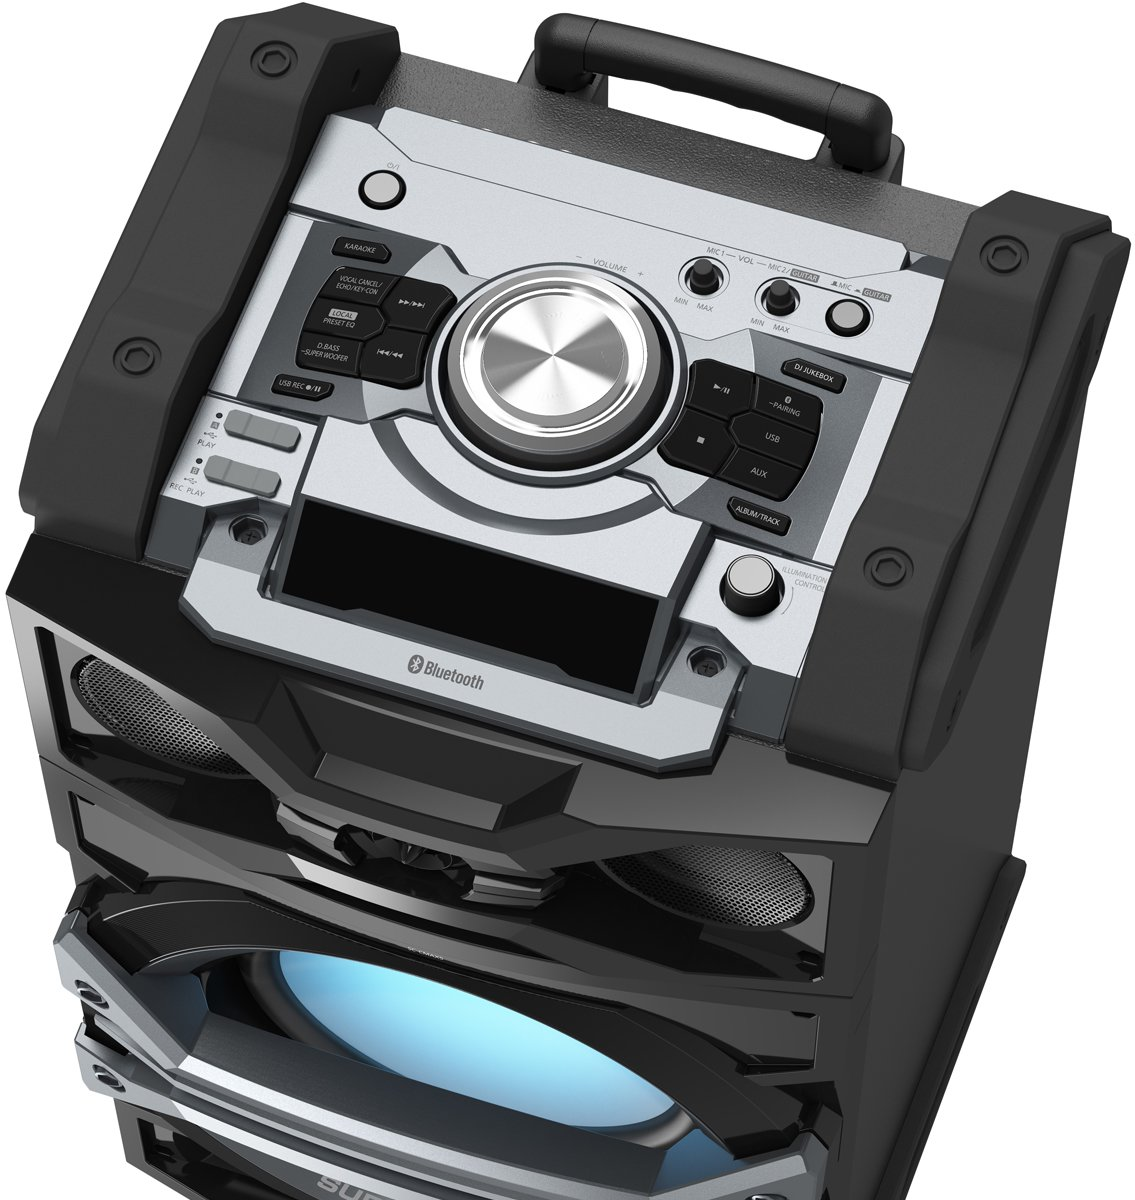 Portable Mini Stereo System SC-CMAX5GS-K